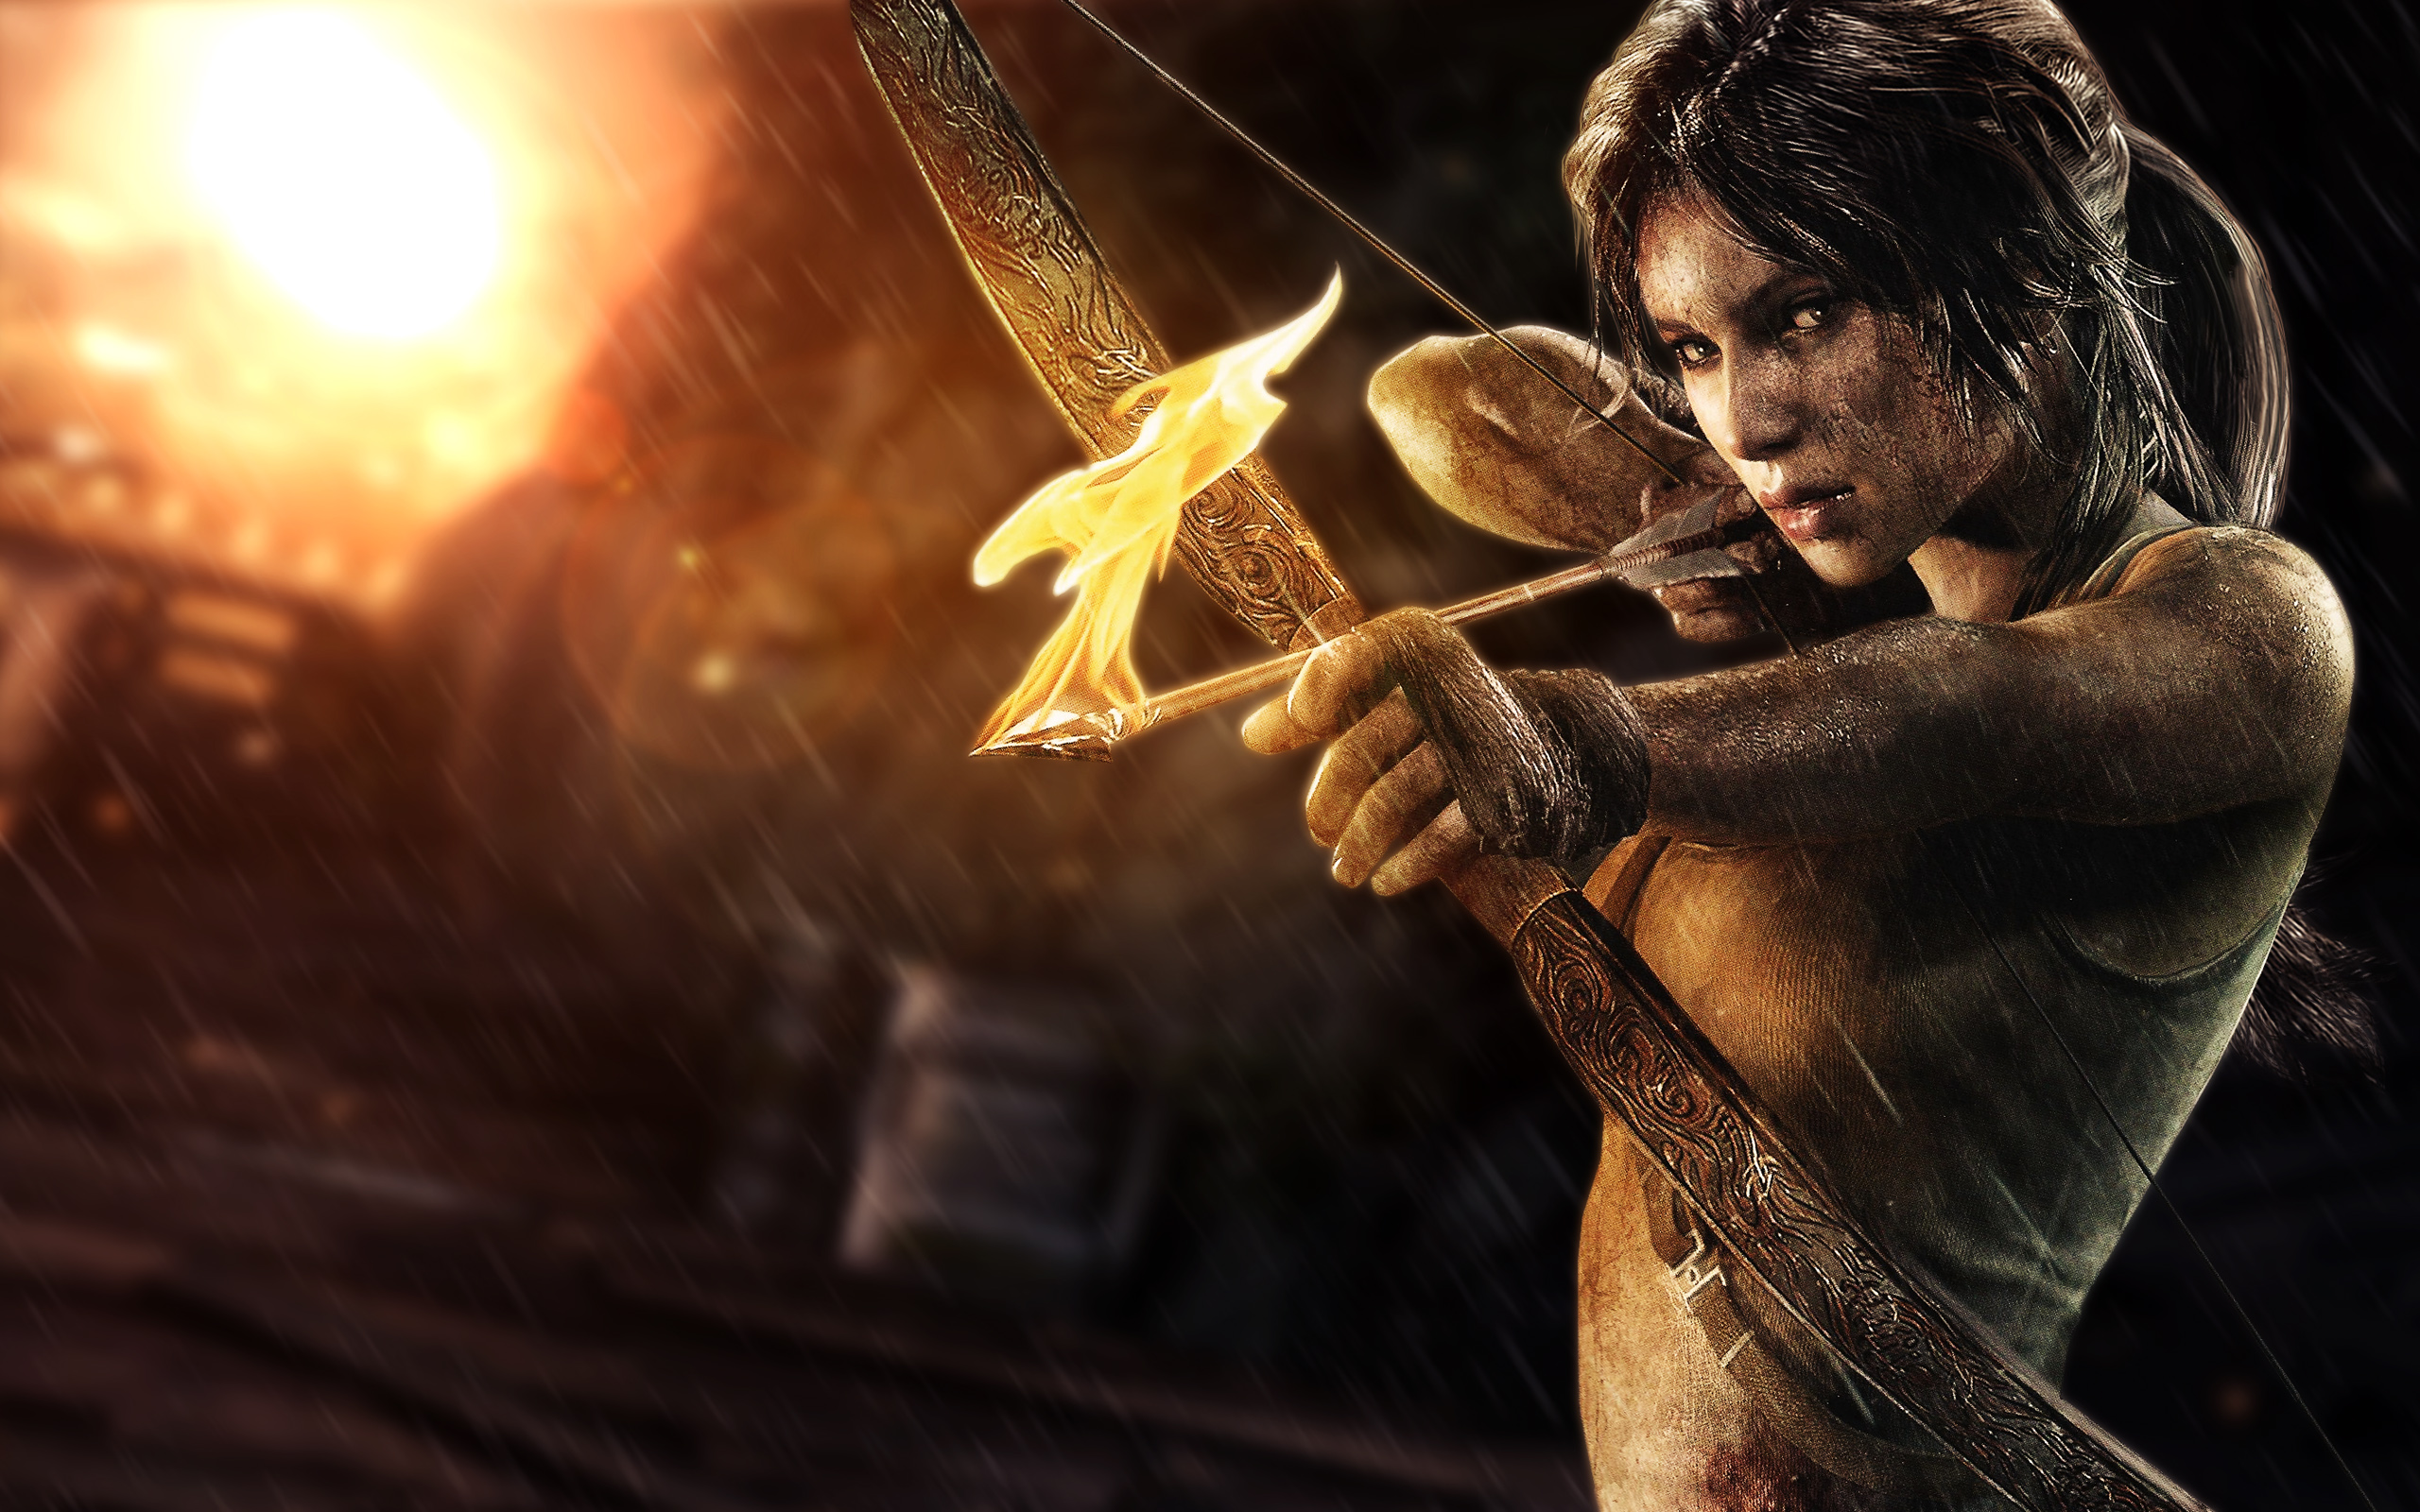 Wonder treasure tomb raider porn game screenshot adult galleries